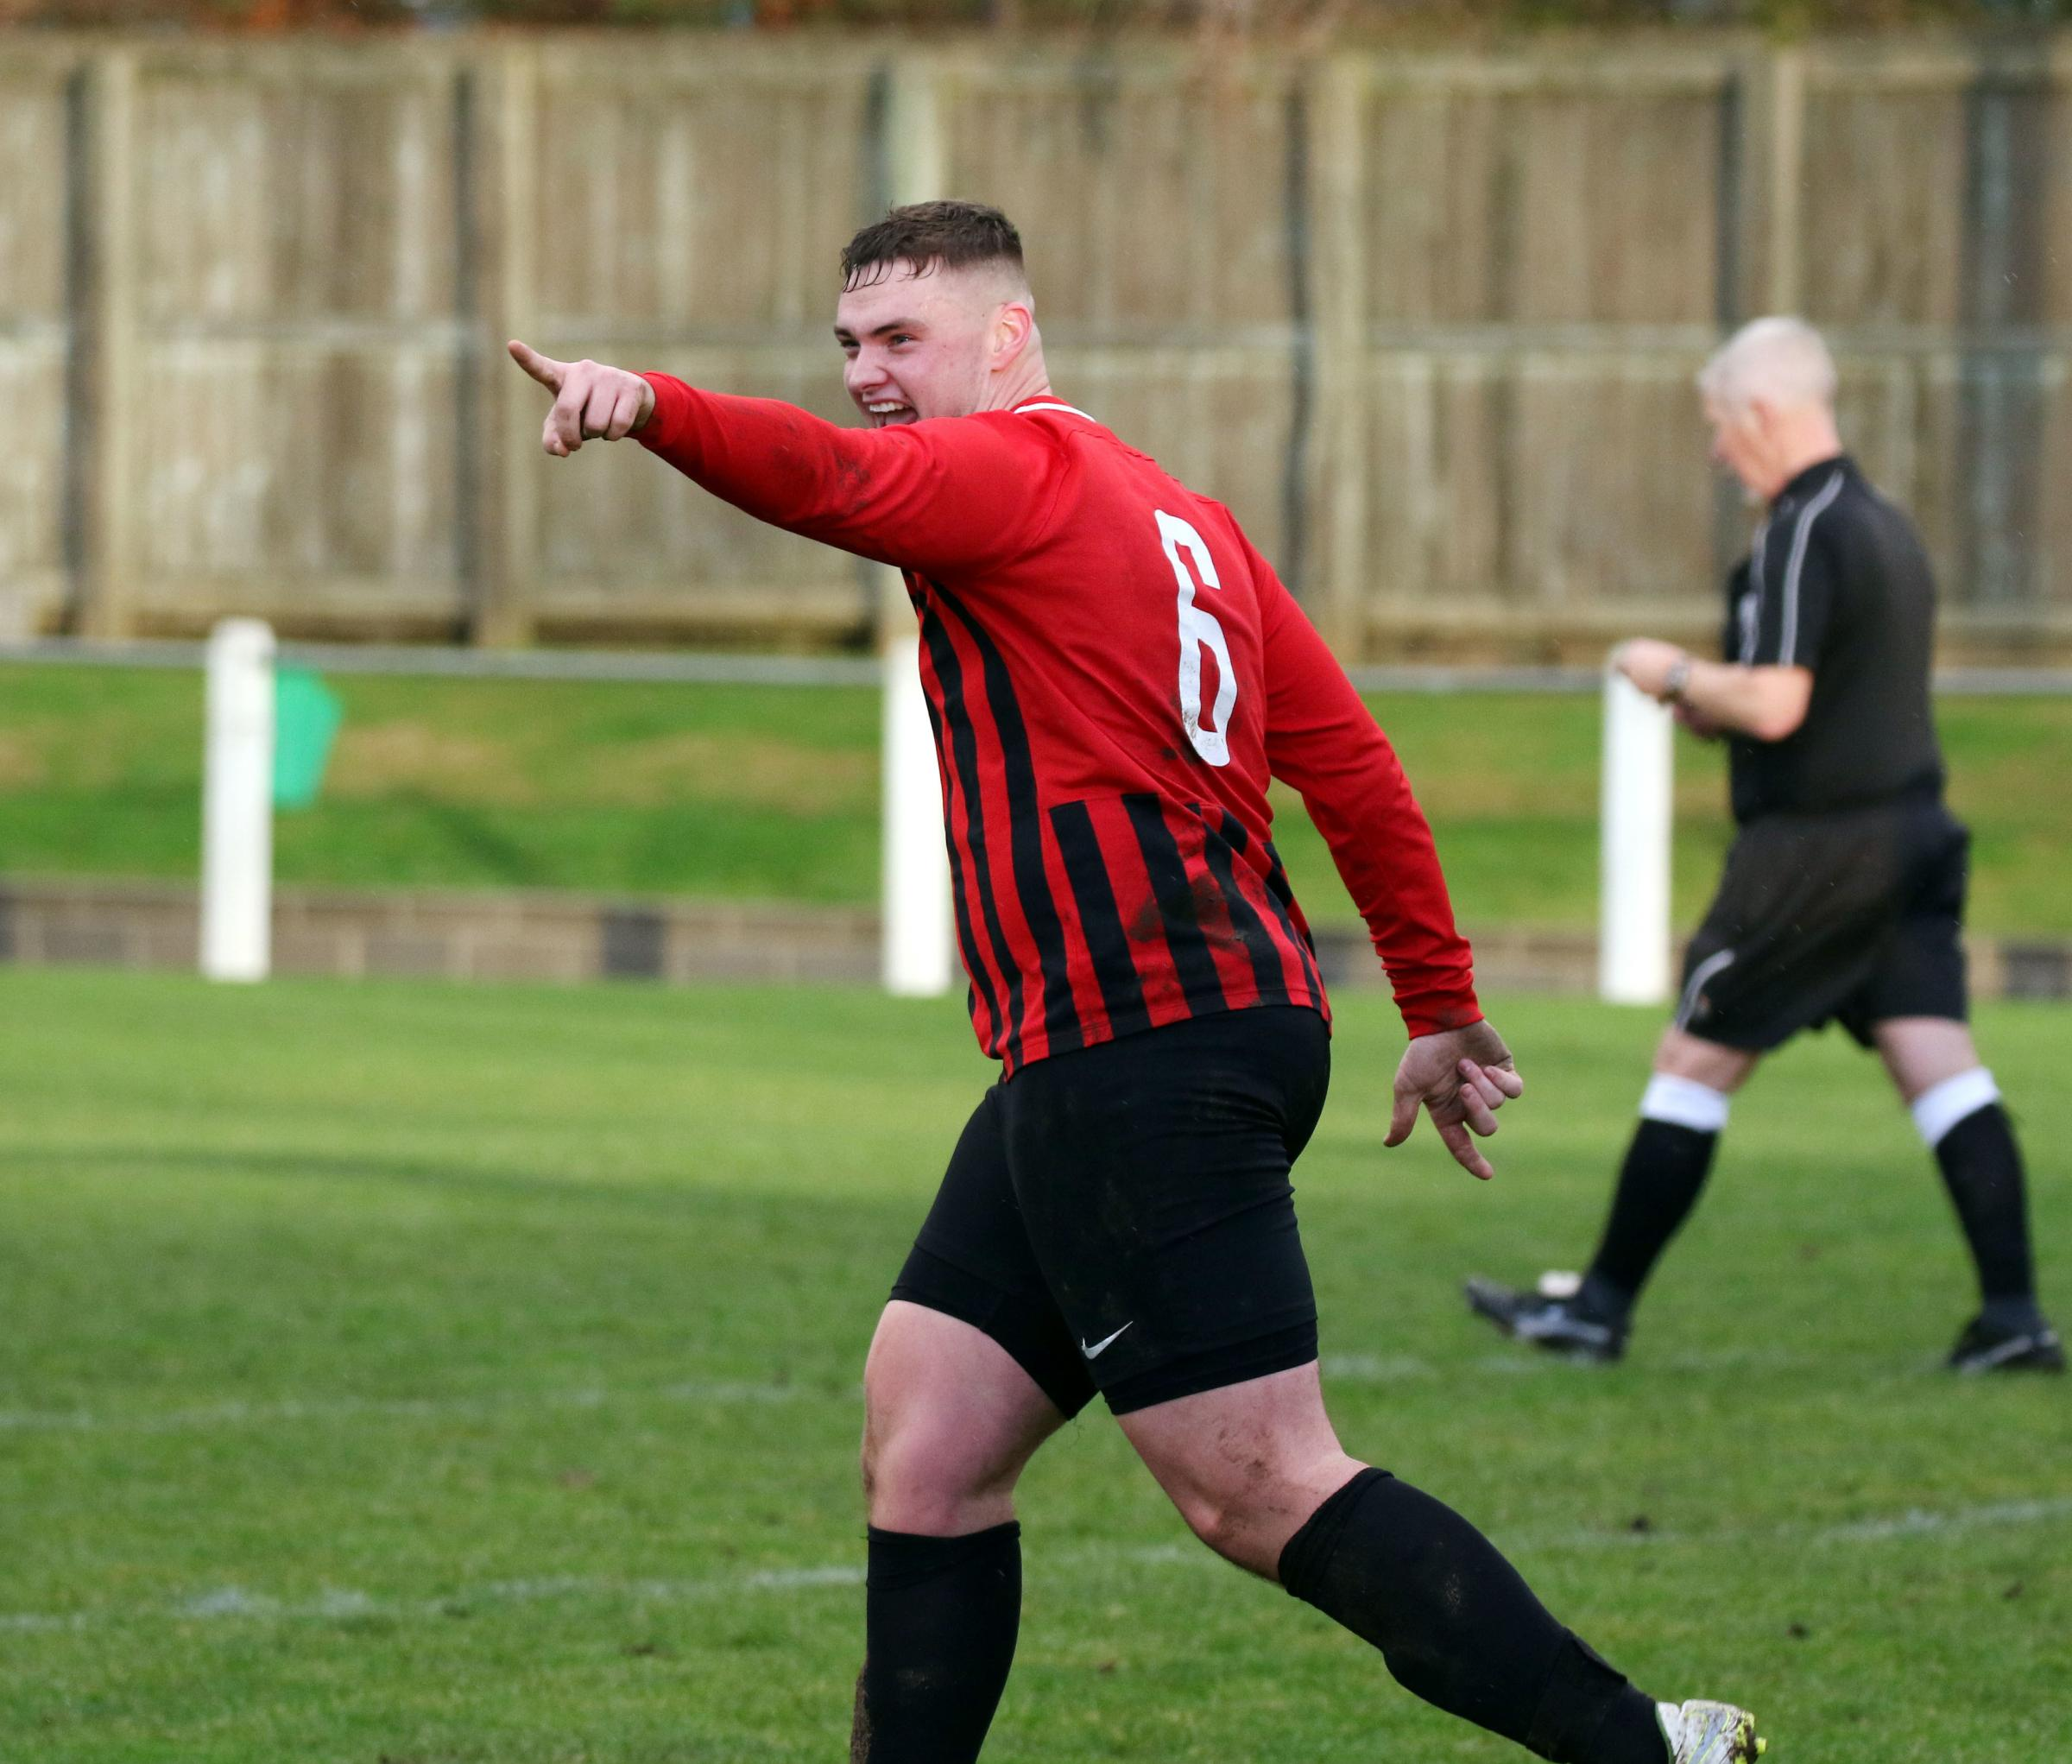 Prudhoe's Kieran Russel scored a trademark header against Forest Hall. Photo: PAUL NORRIS